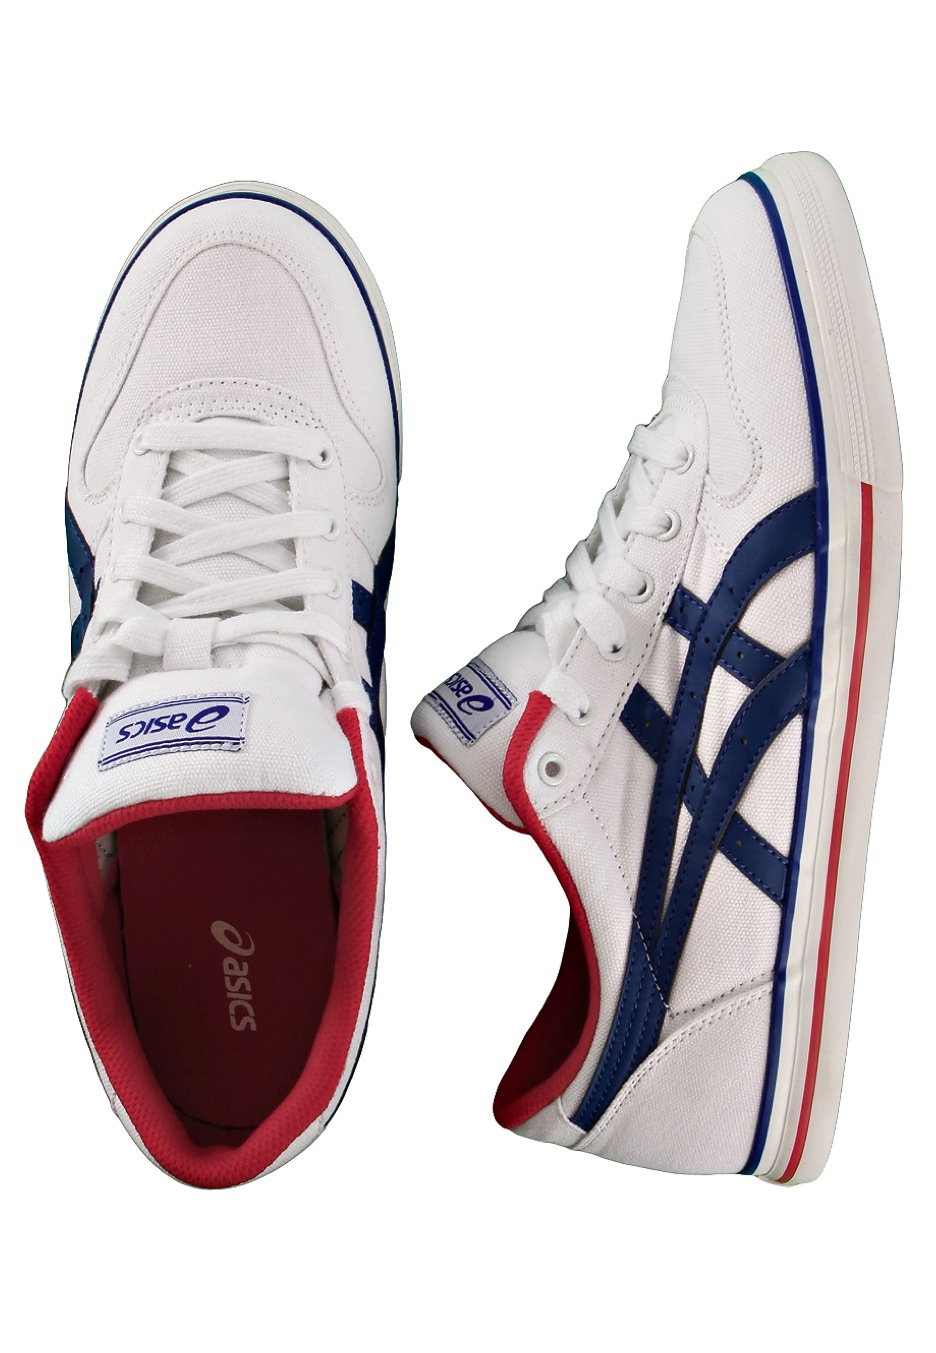 Asics - Aaron CV White/Navy - Shoes